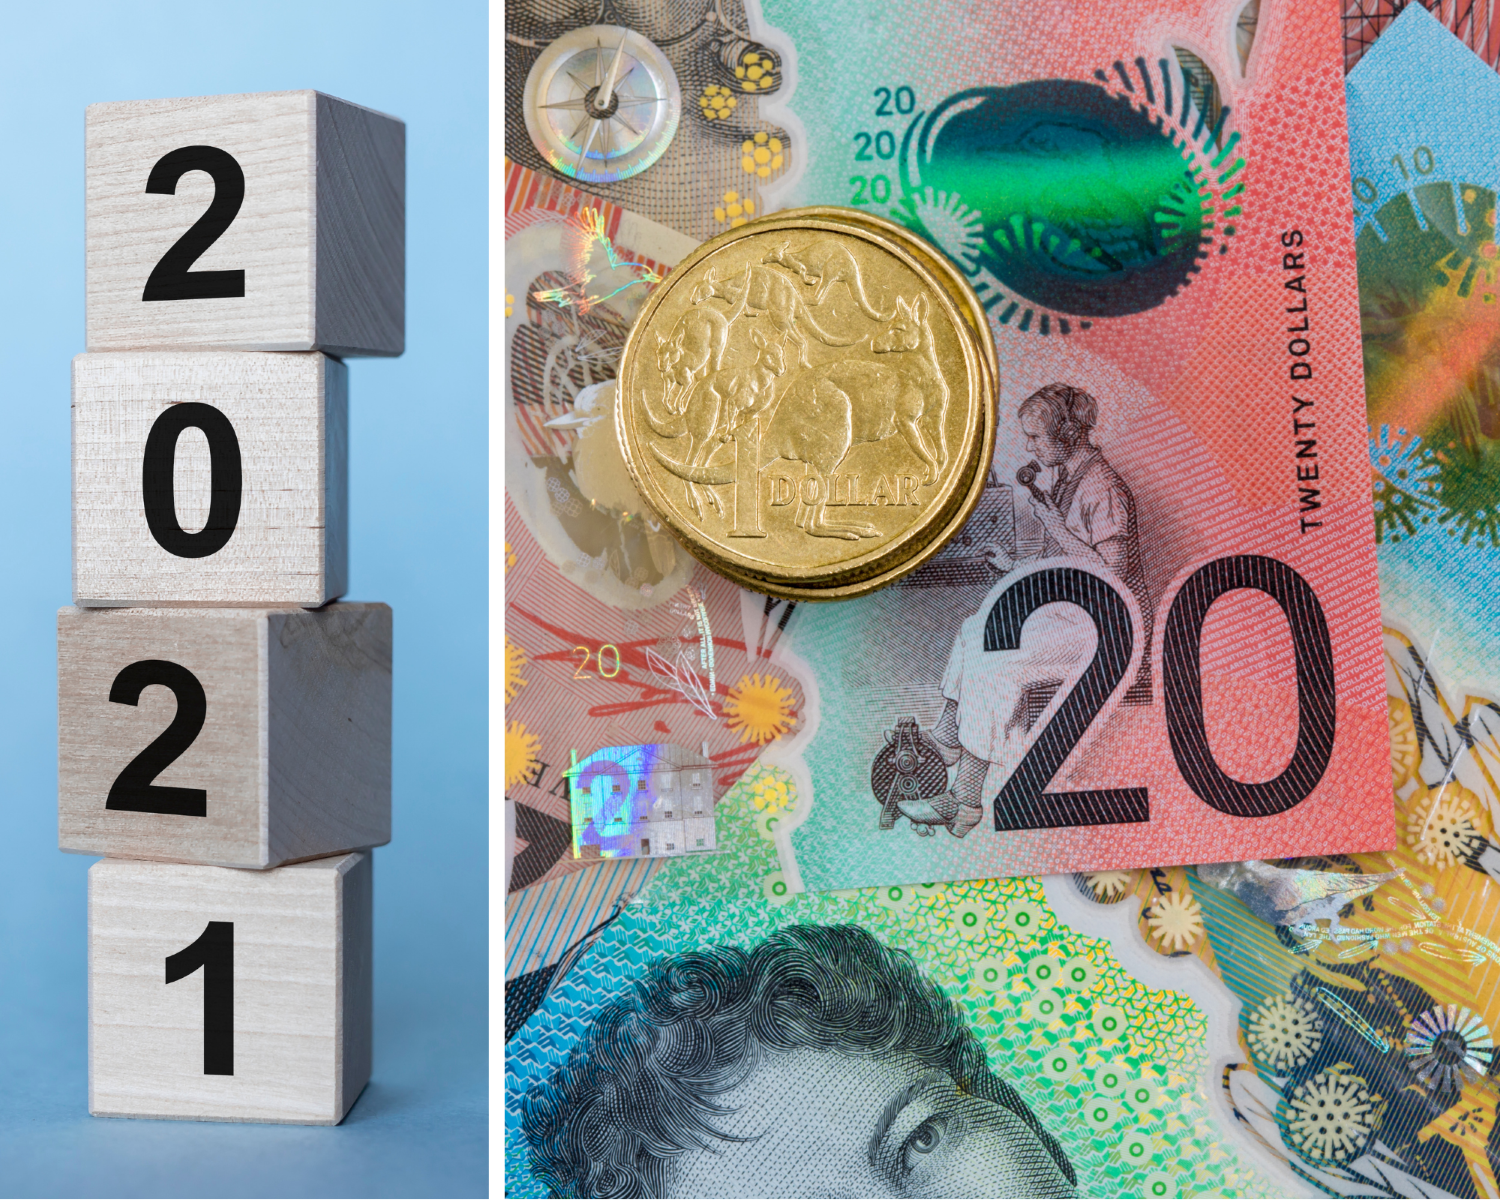 Huge superannuation changes in Federal Budget